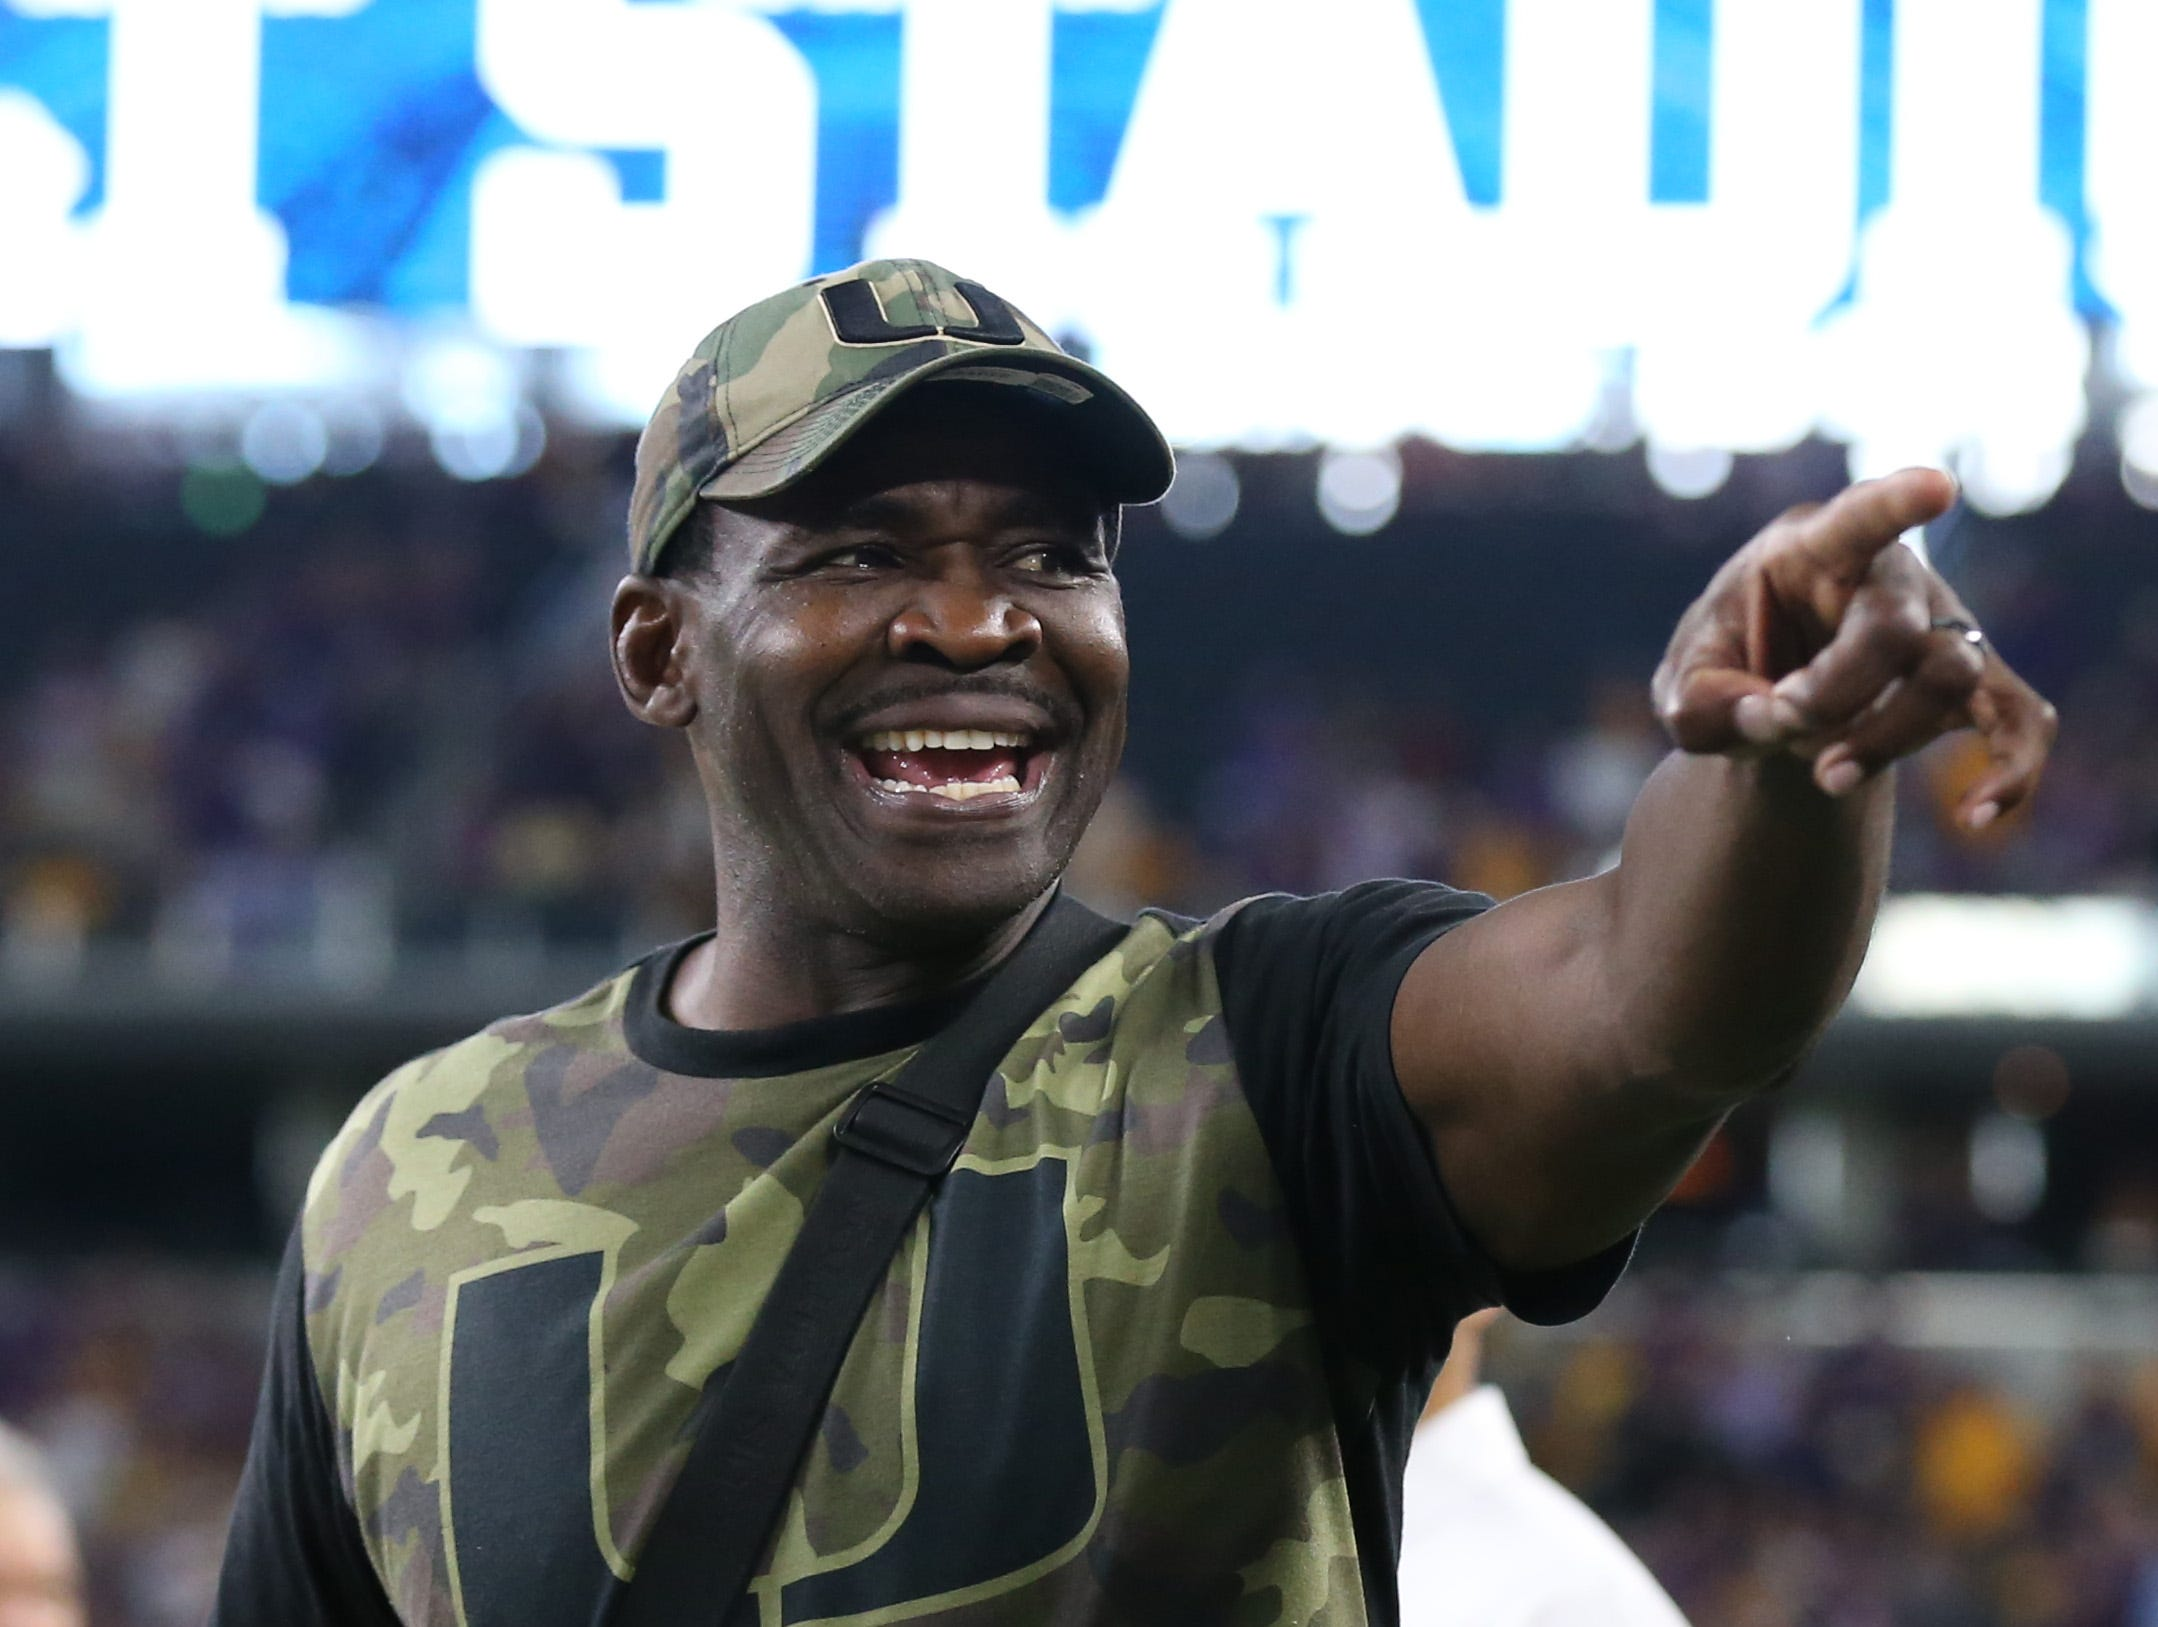 Week 1: Former Miami Hurricanes star Michael Irvin on the sidelines prior to the game against LSU Tigers at AT&T Stadium.